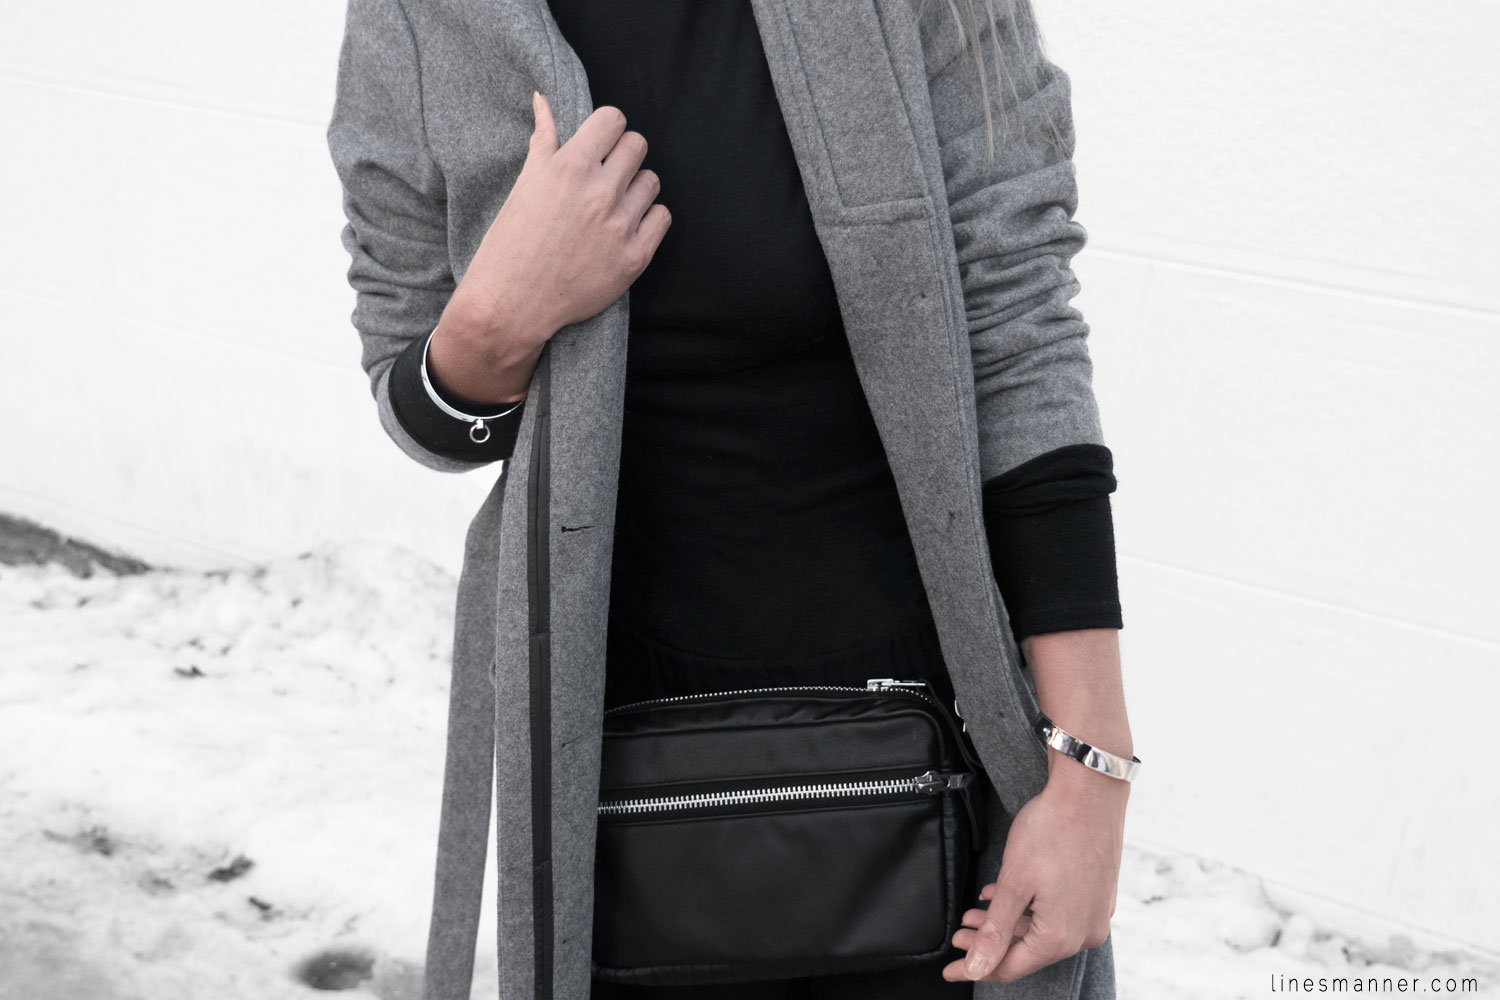 Lines-Manner-Simplicity-Neutral-Palette-Functional-Versatile-Timeless-Grey-Winter_Coat-Details-Essentials-Minimal-Basics-9